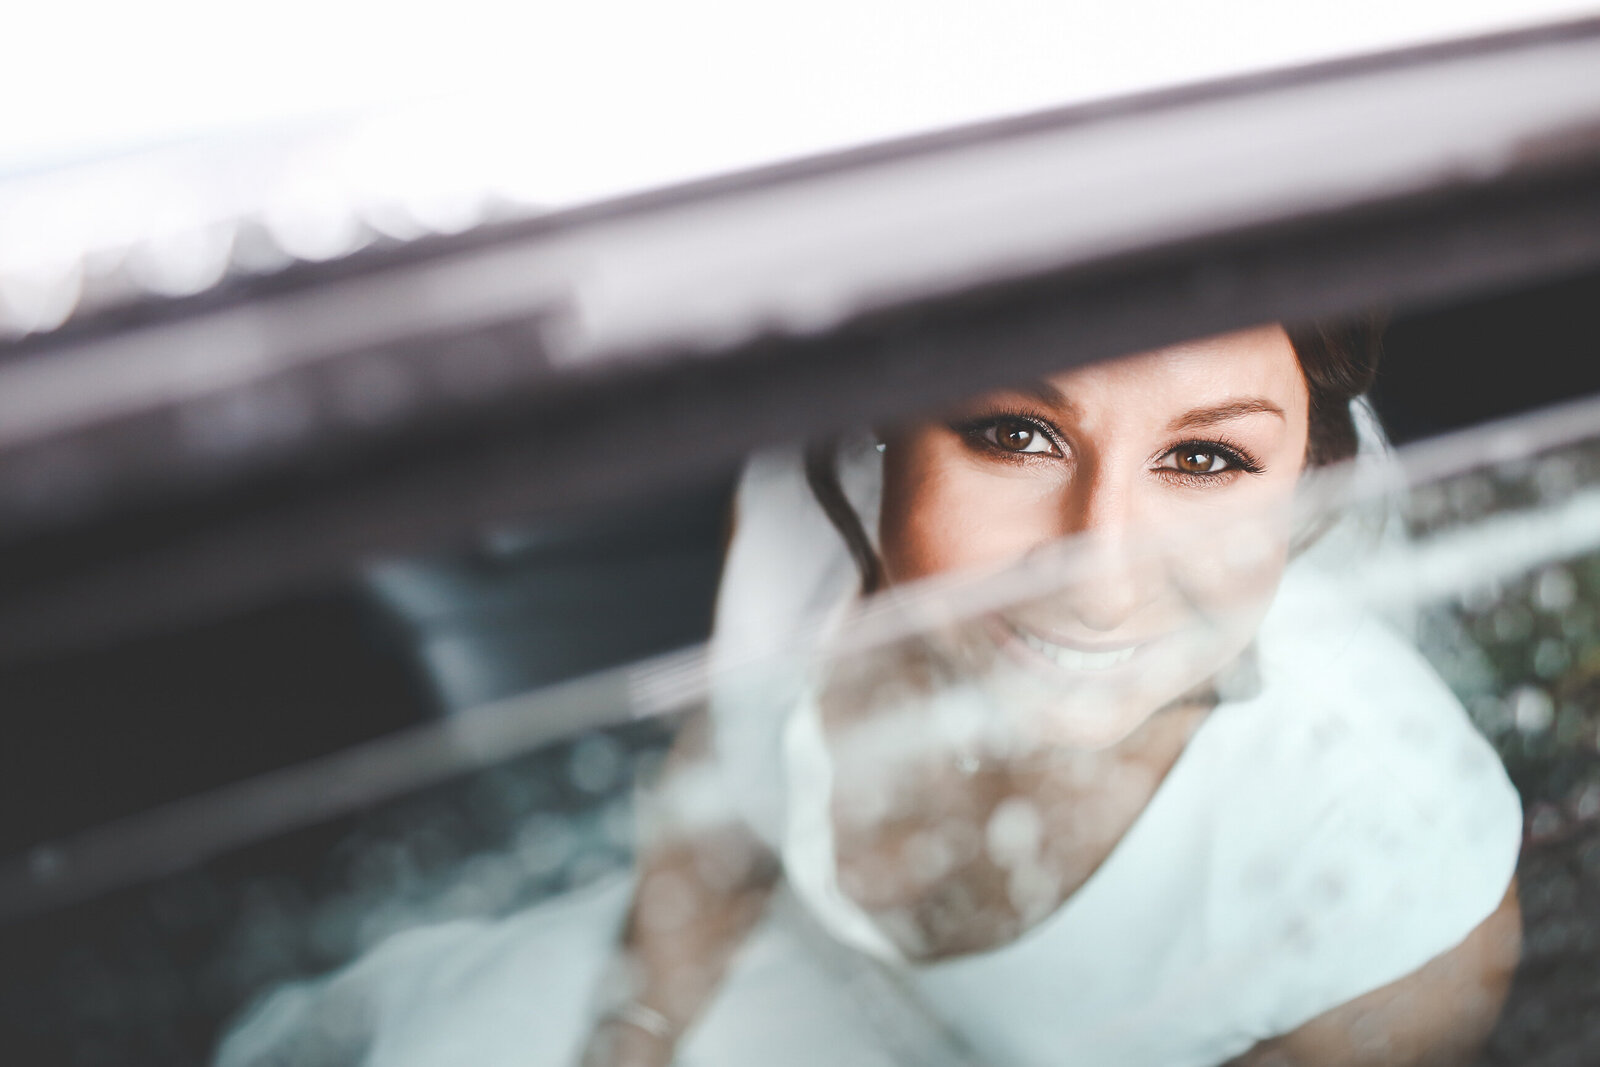 WP-SURREY-WET-WEDDING-RAINY-BEAUTIFUL-EYES_0006